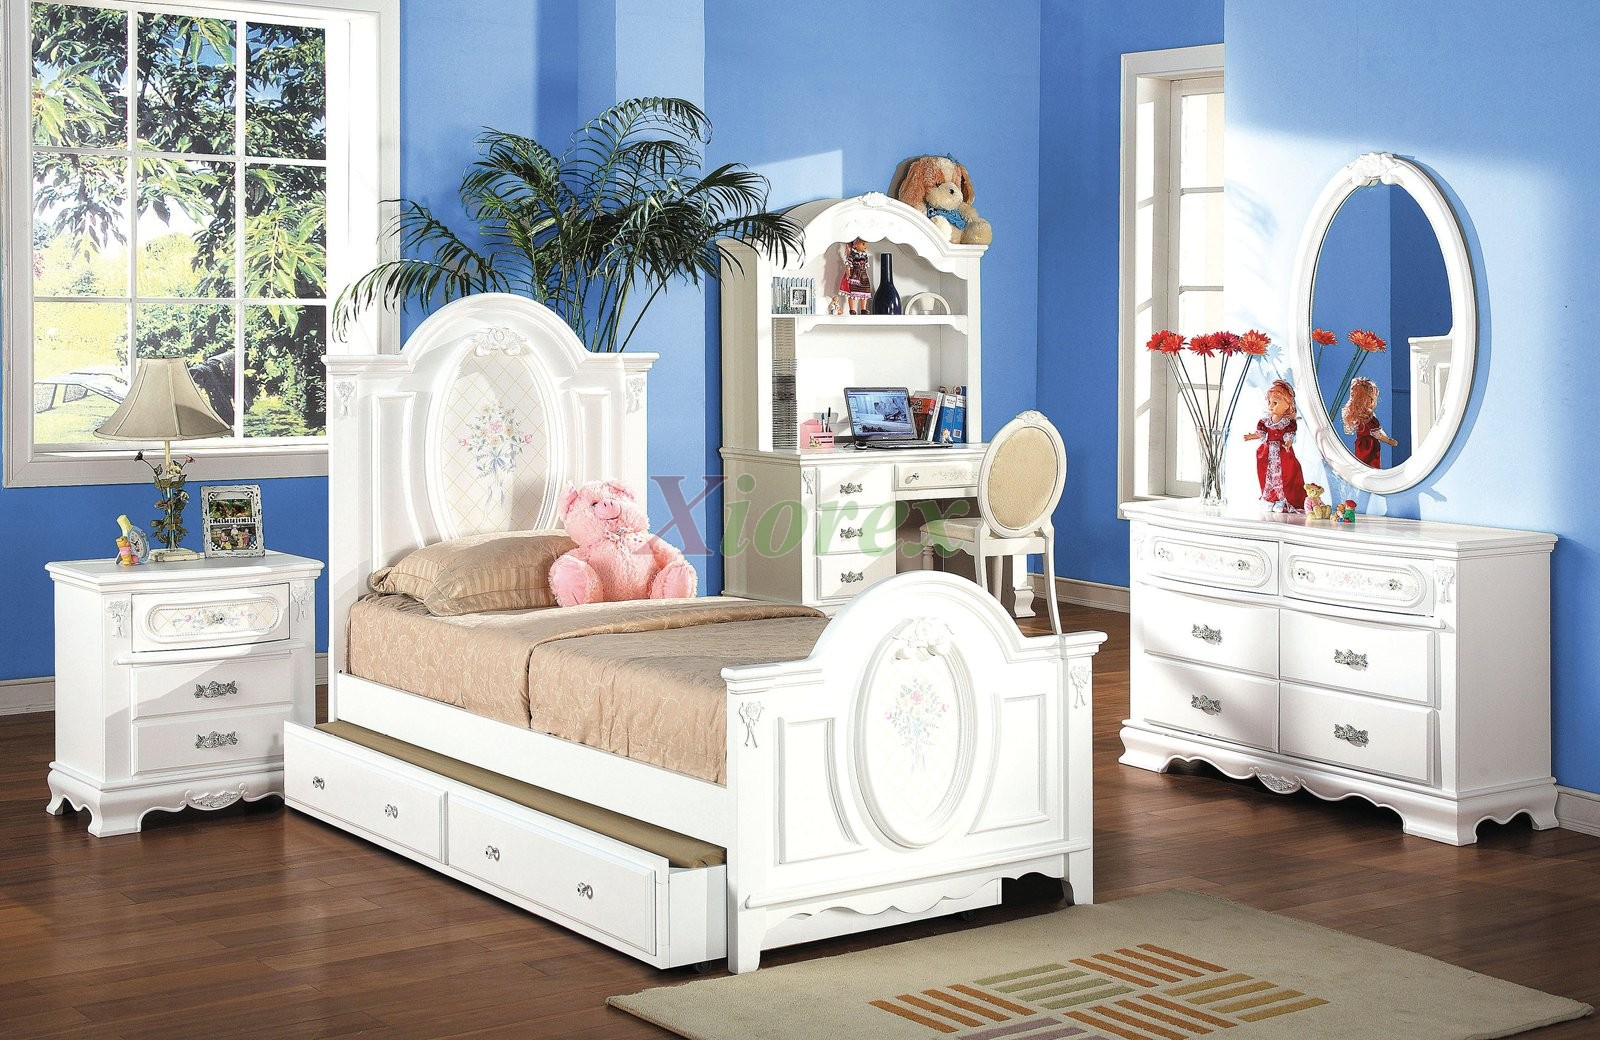 Nice Kids Bedroom Furniture Set With Trundle Bed And Hutch 174 | Xiorex